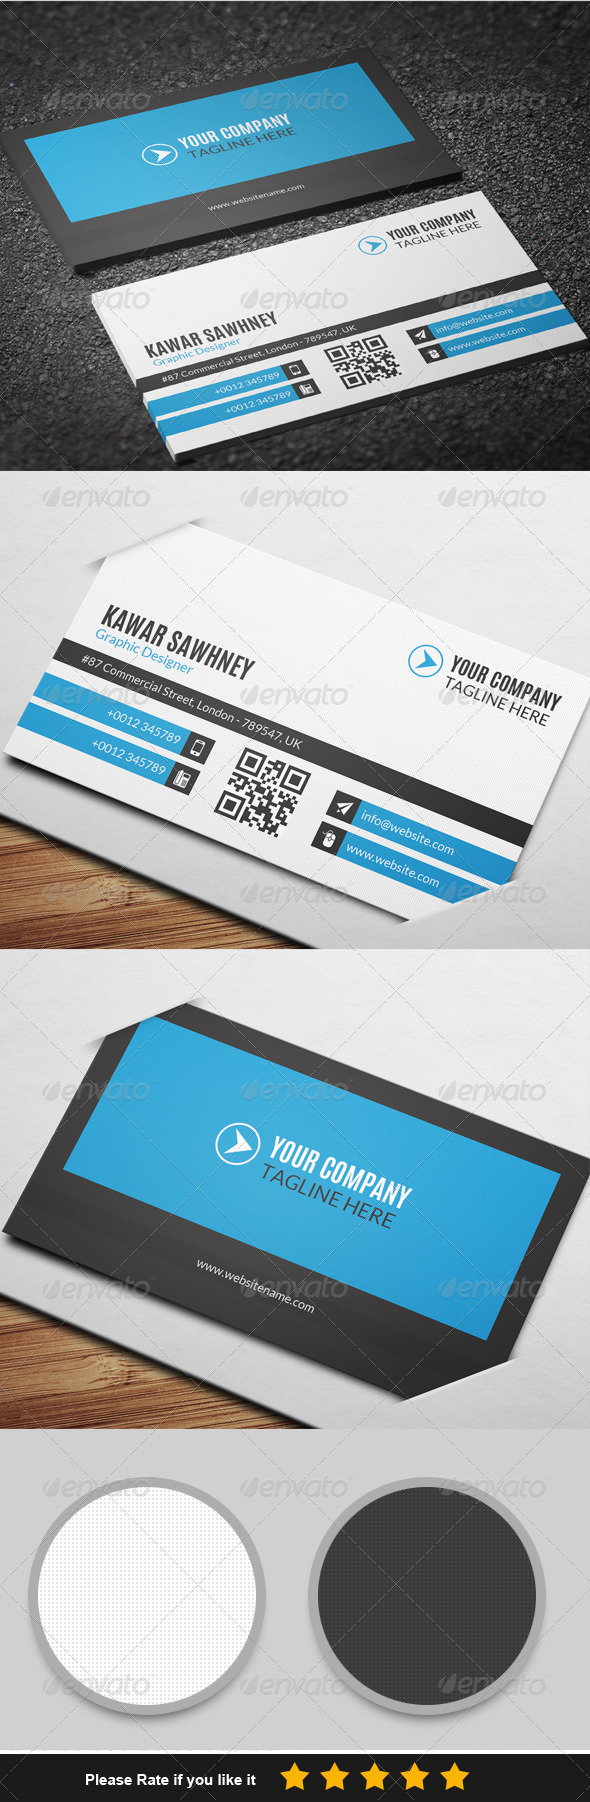 GraphicRiver Corporate Business Card 5 7712756